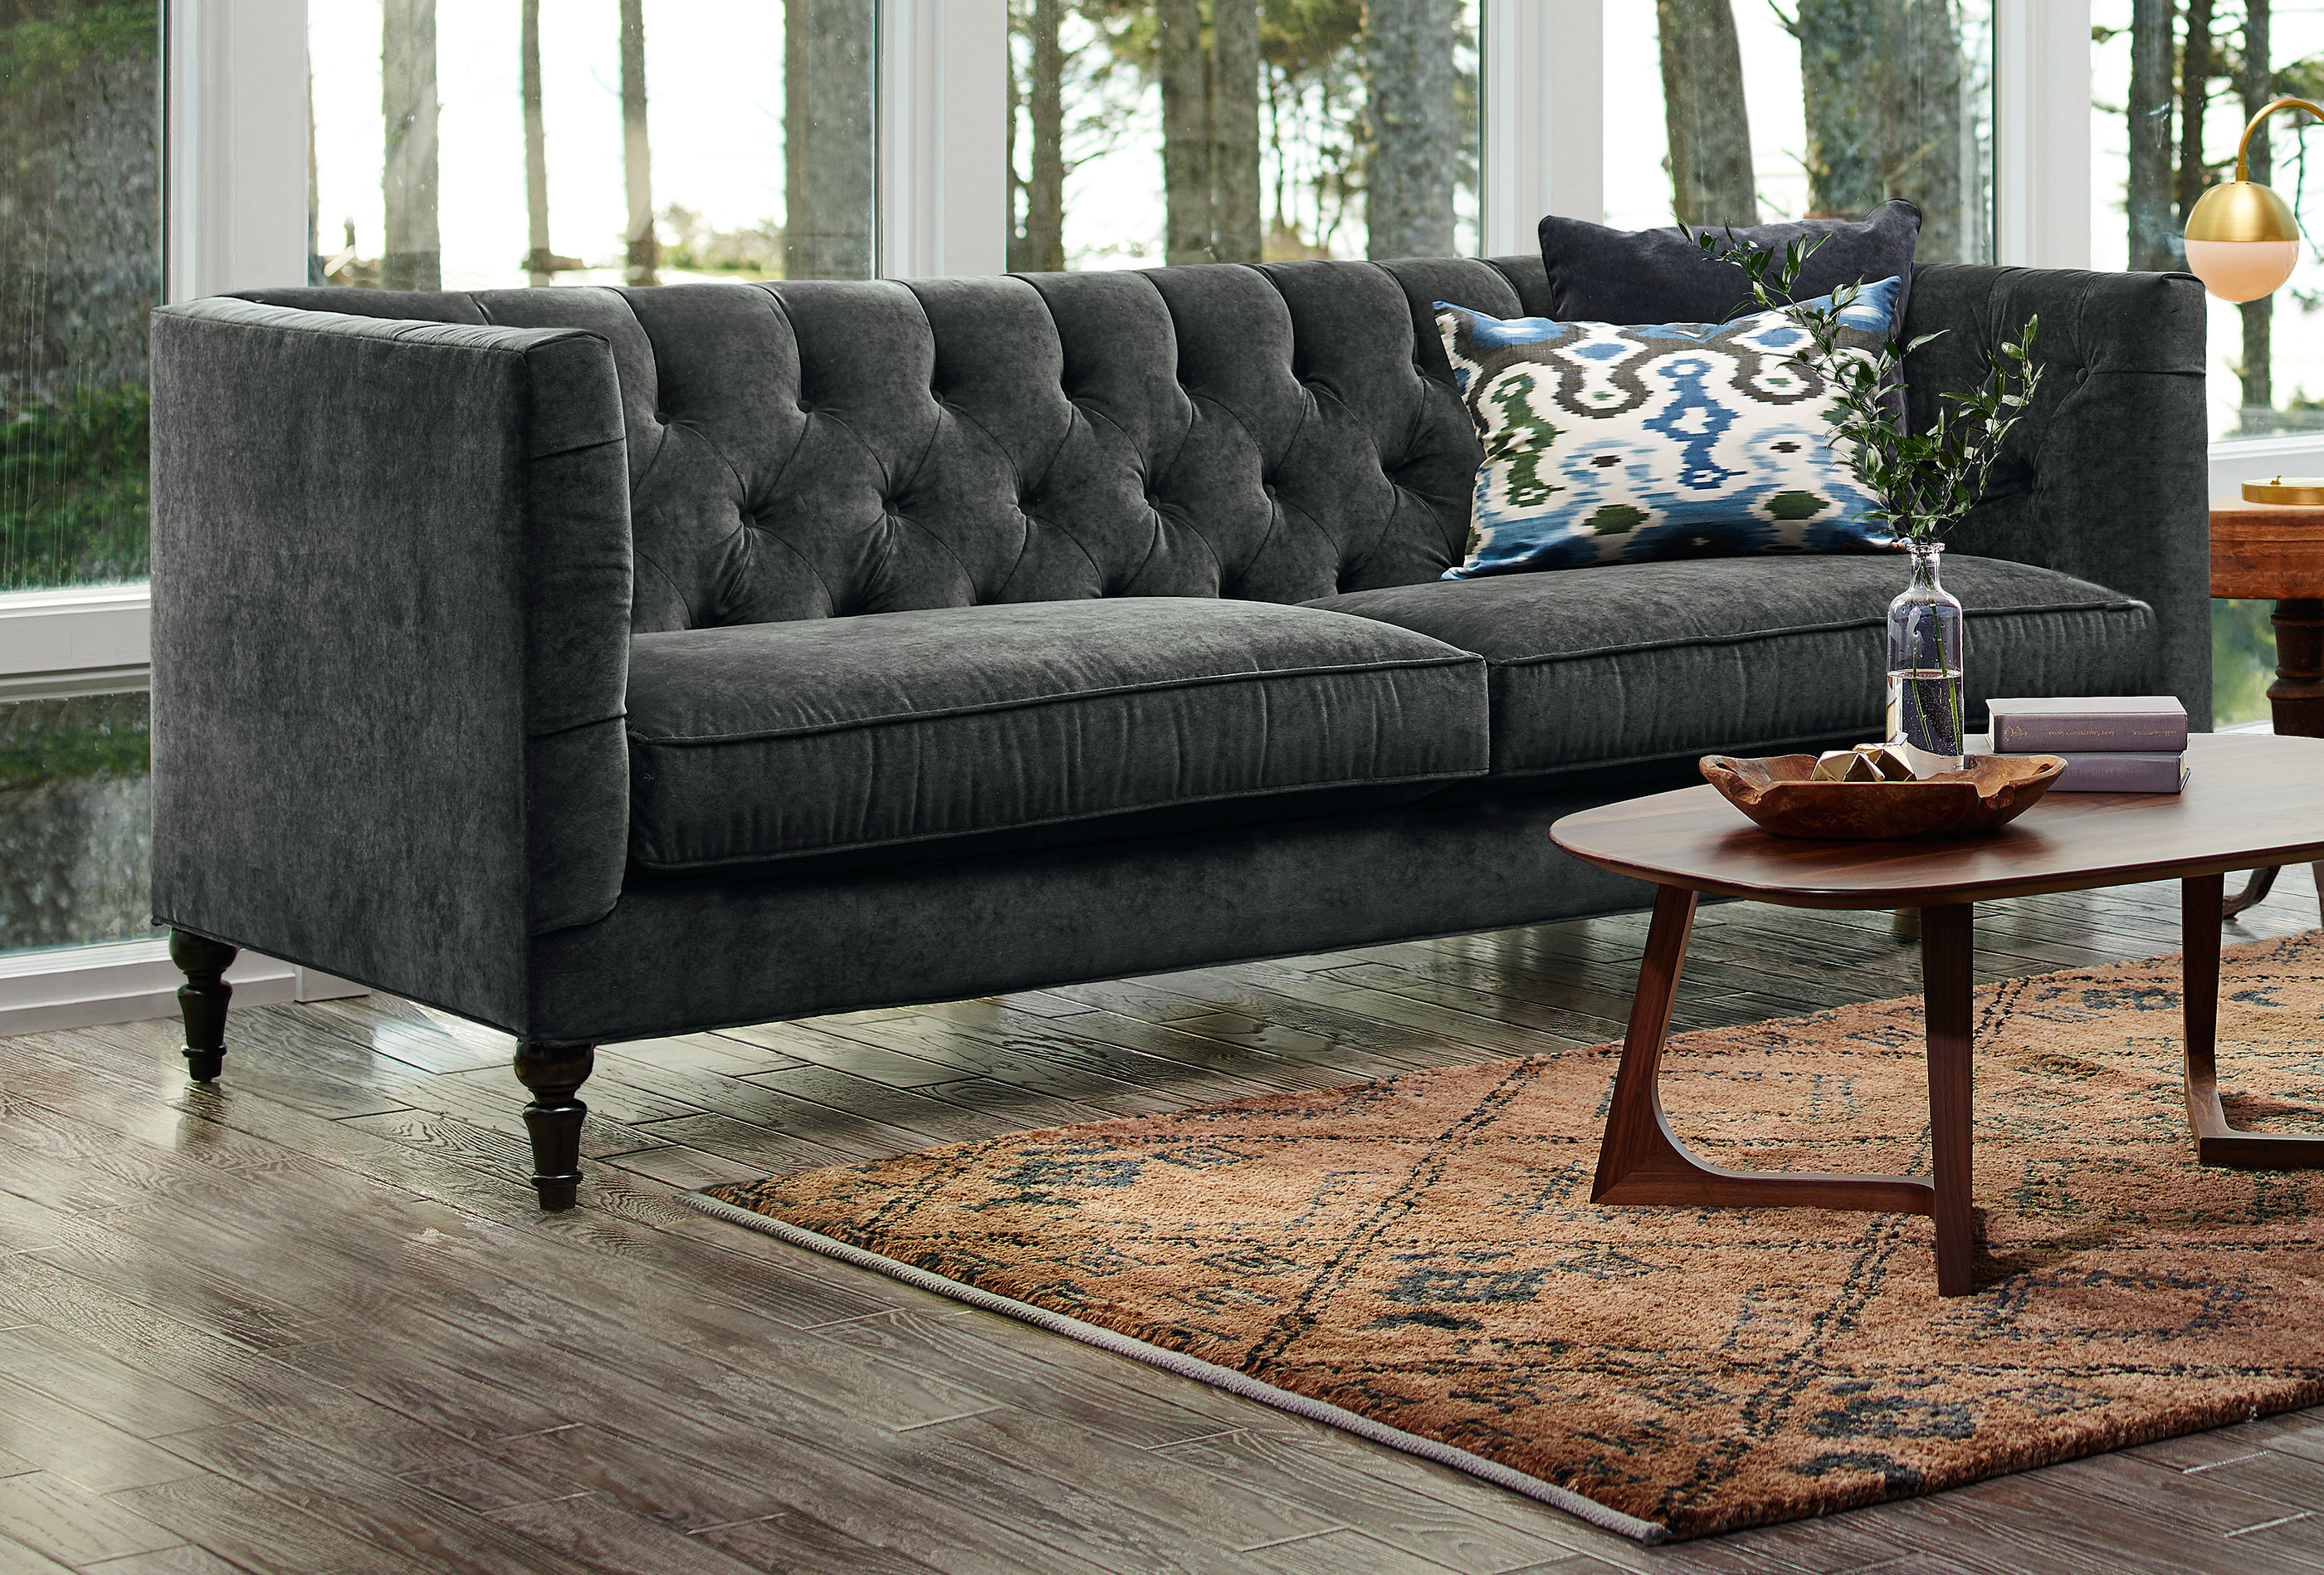 Why benchmade furniture - Furniture advertising ideas ...